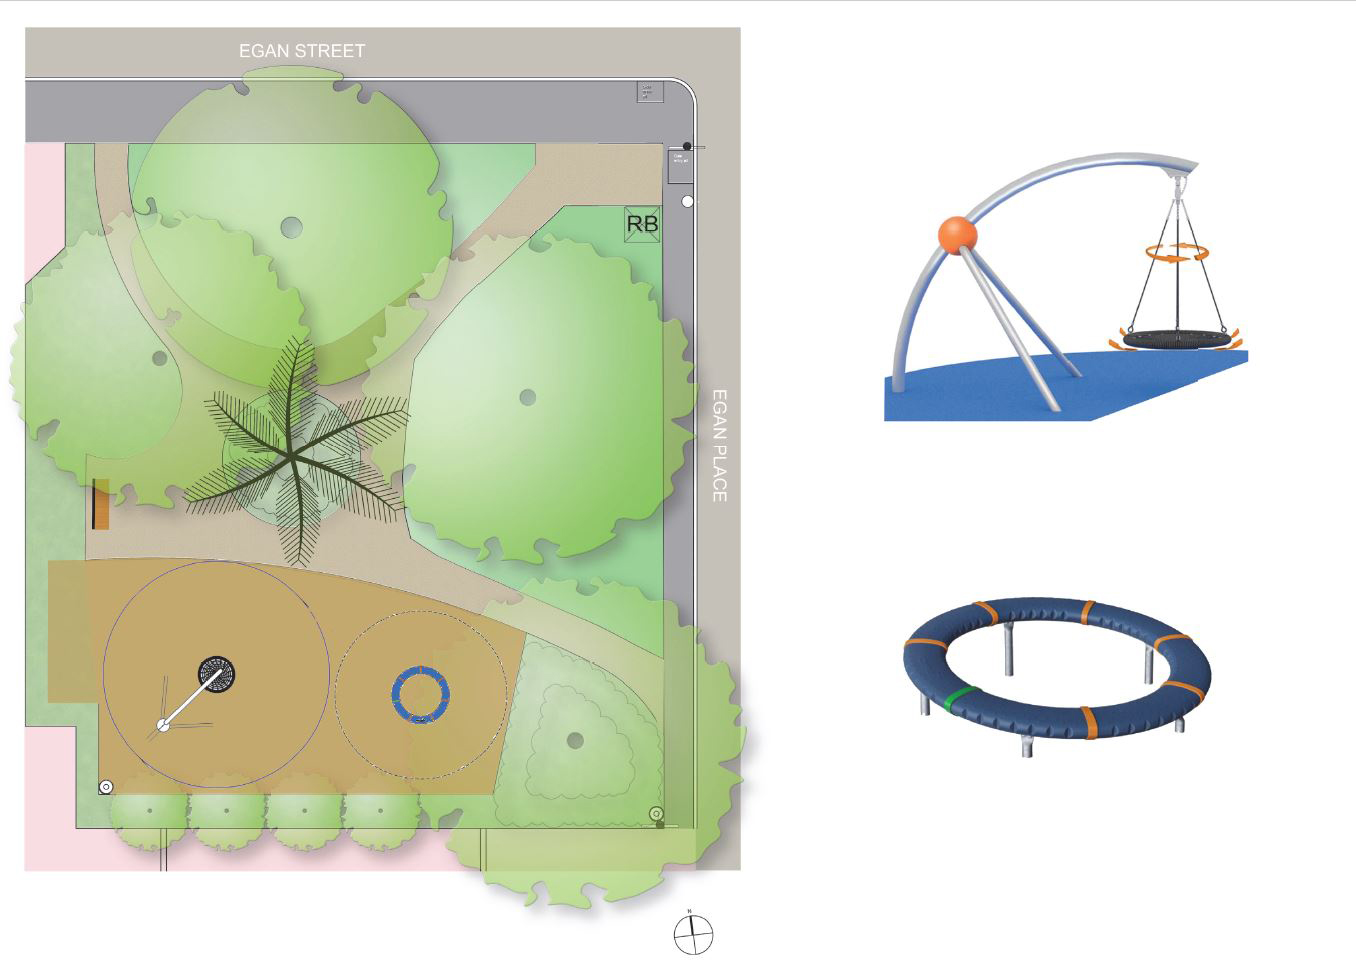 Park design, featuring basket swing and spinner.